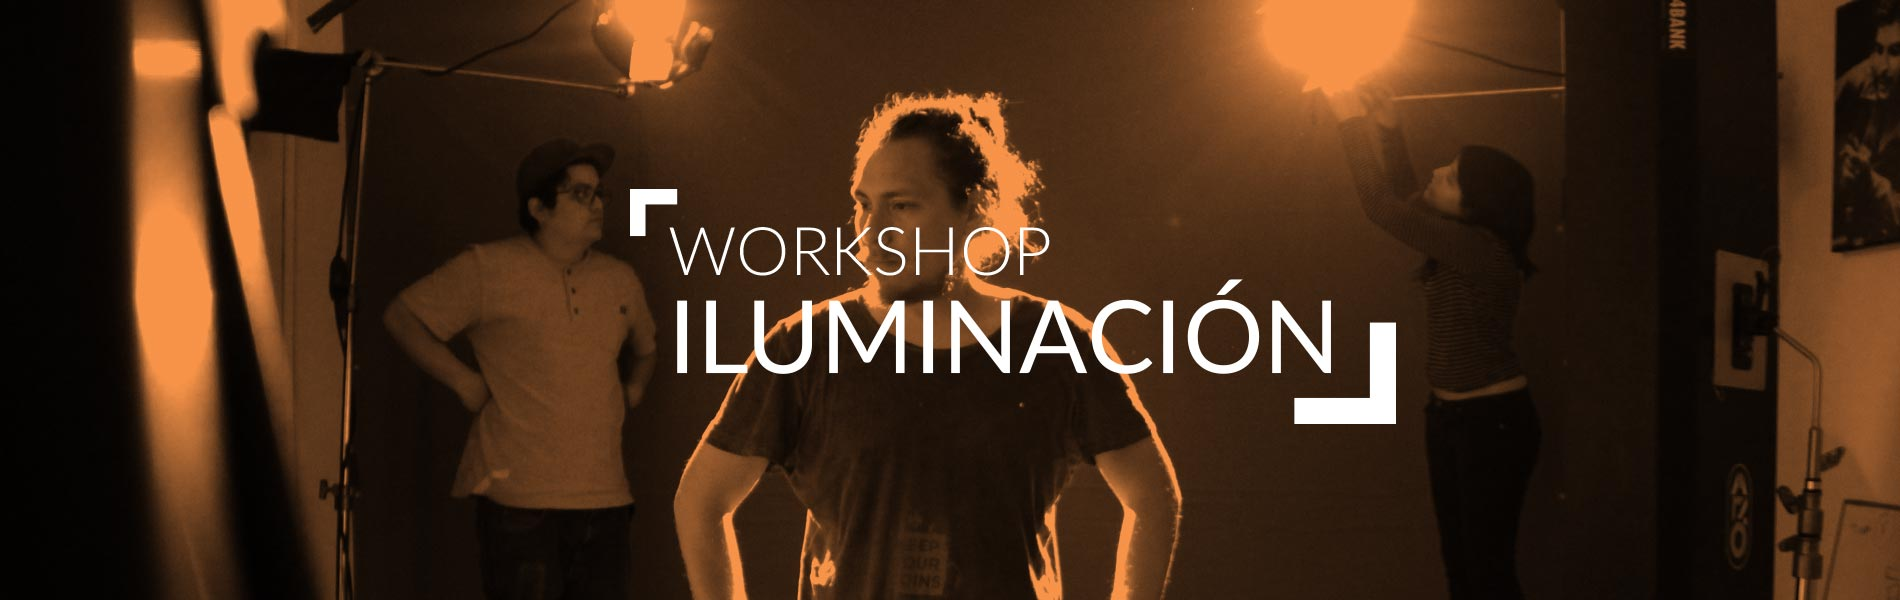 Workshop Iluminacion